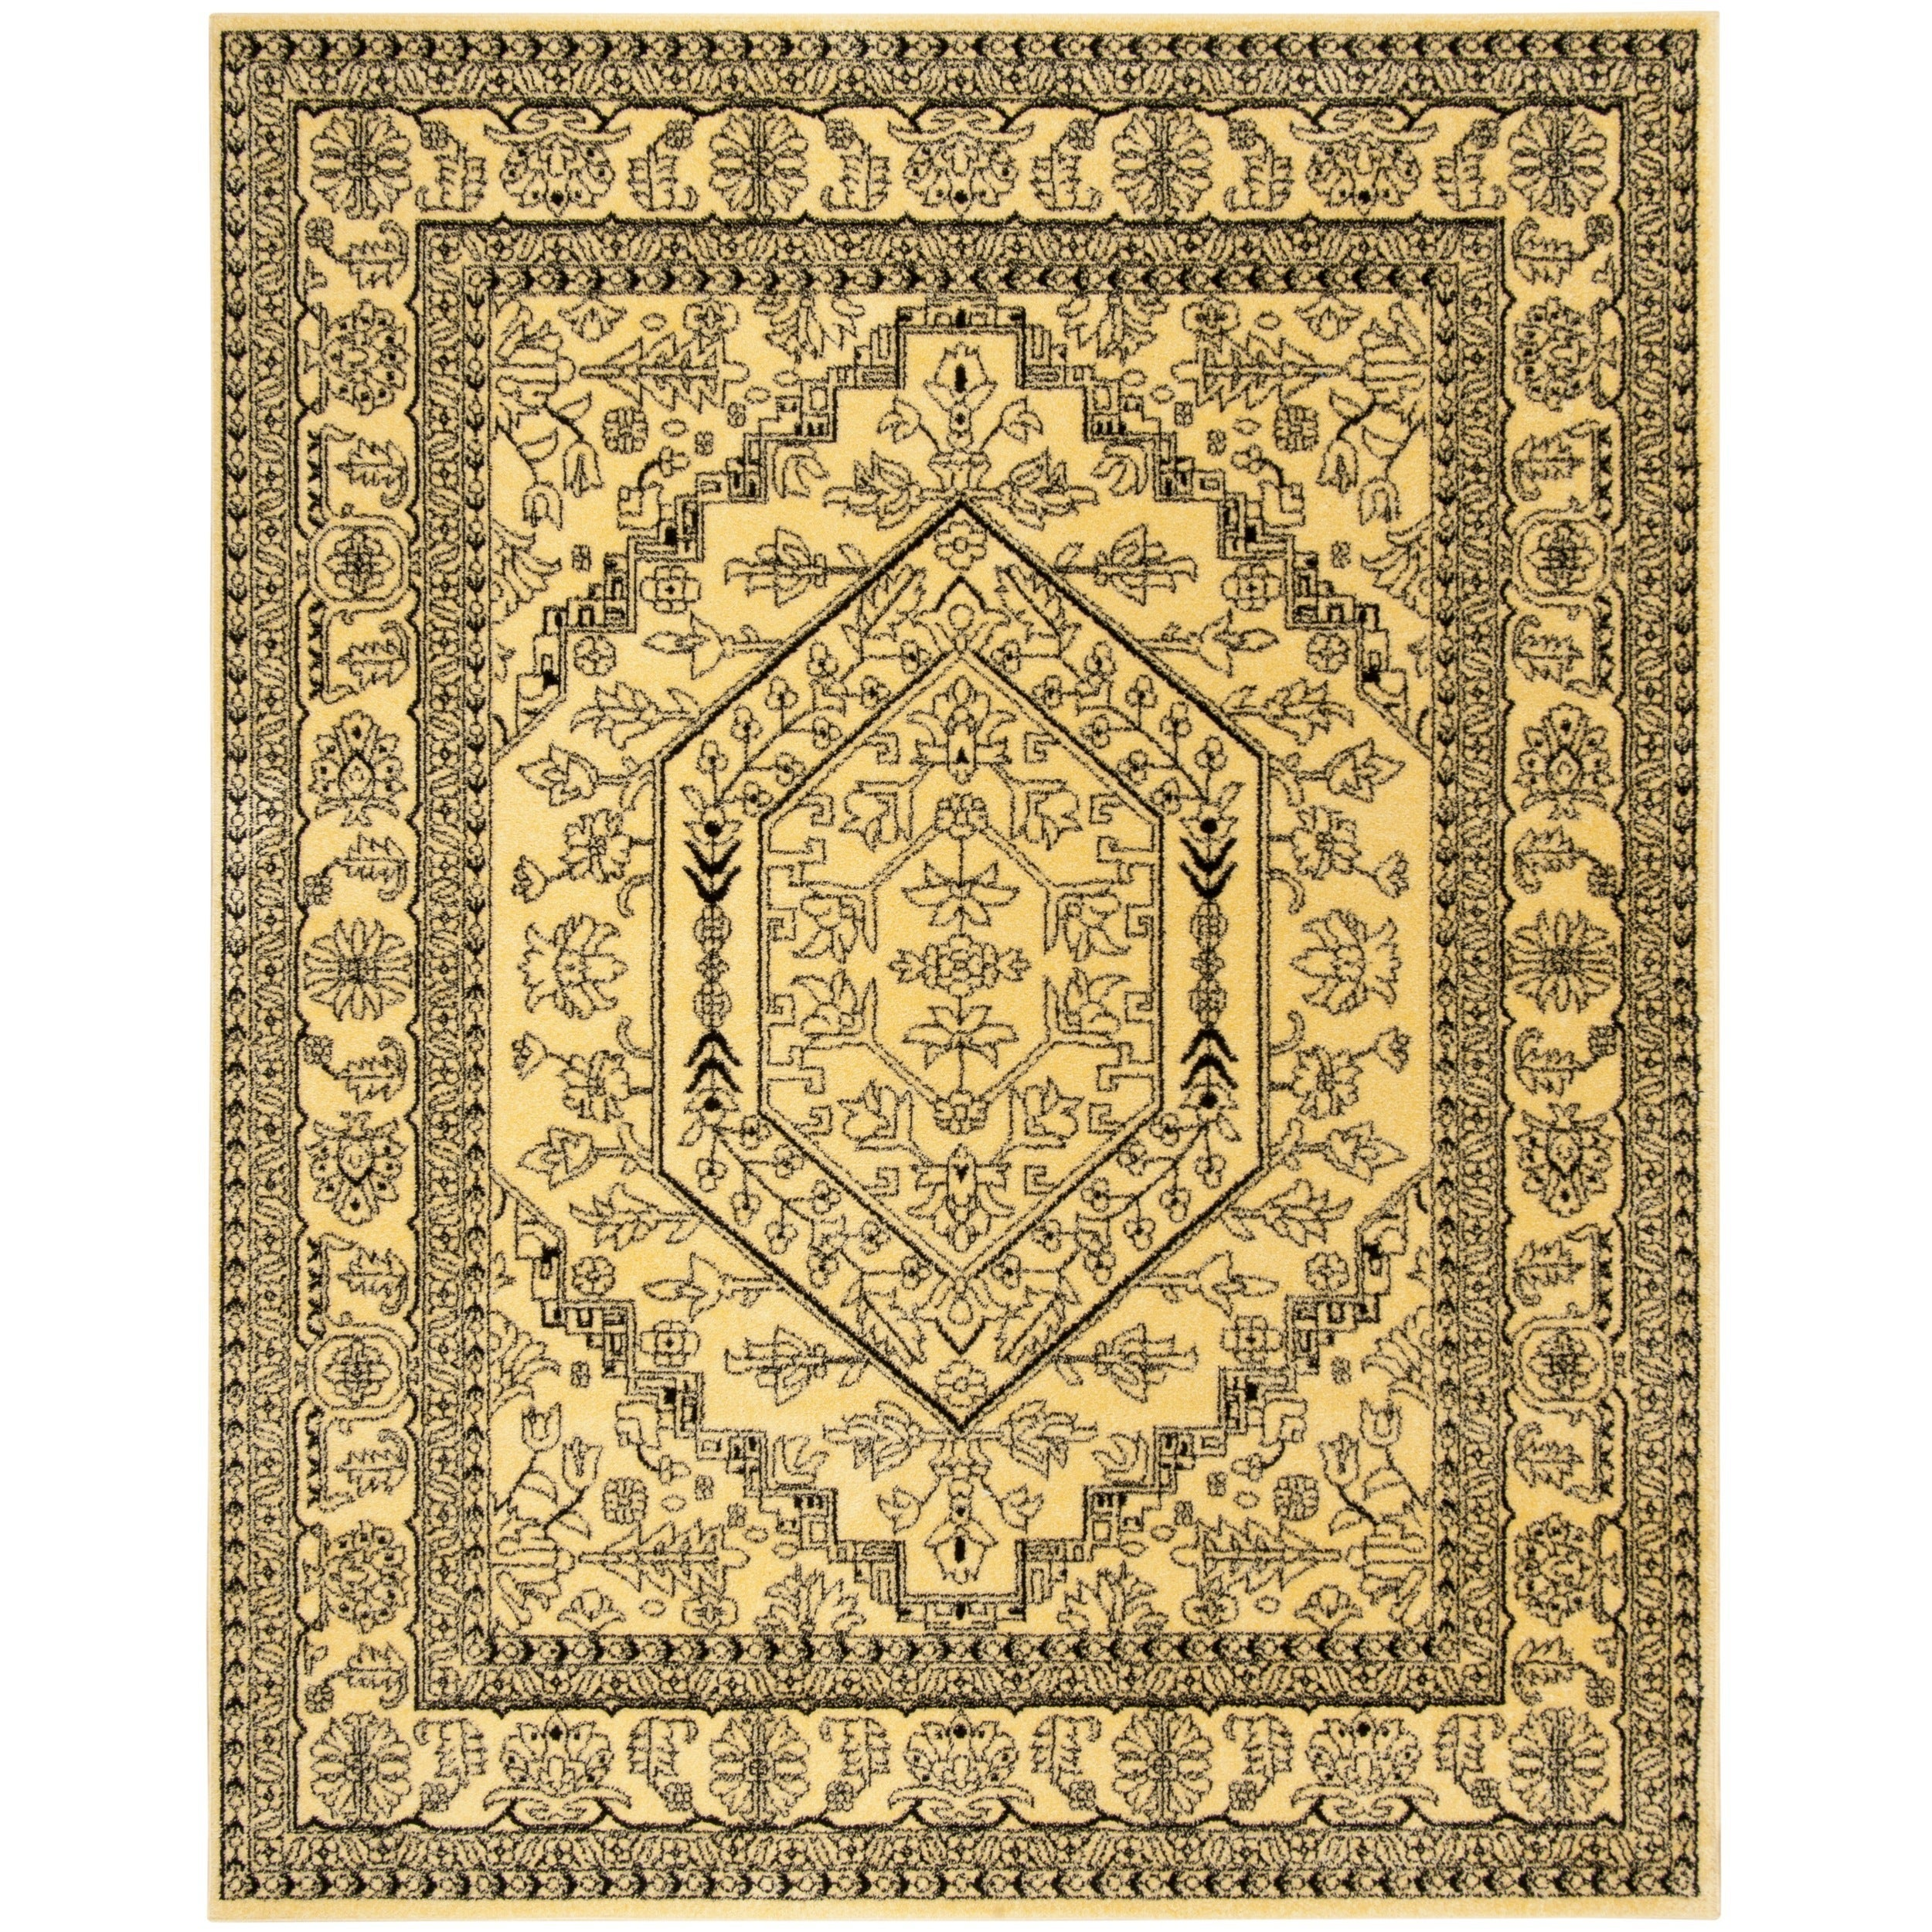 for the pin rug gold rugs and rughome wool lola home pinterest black